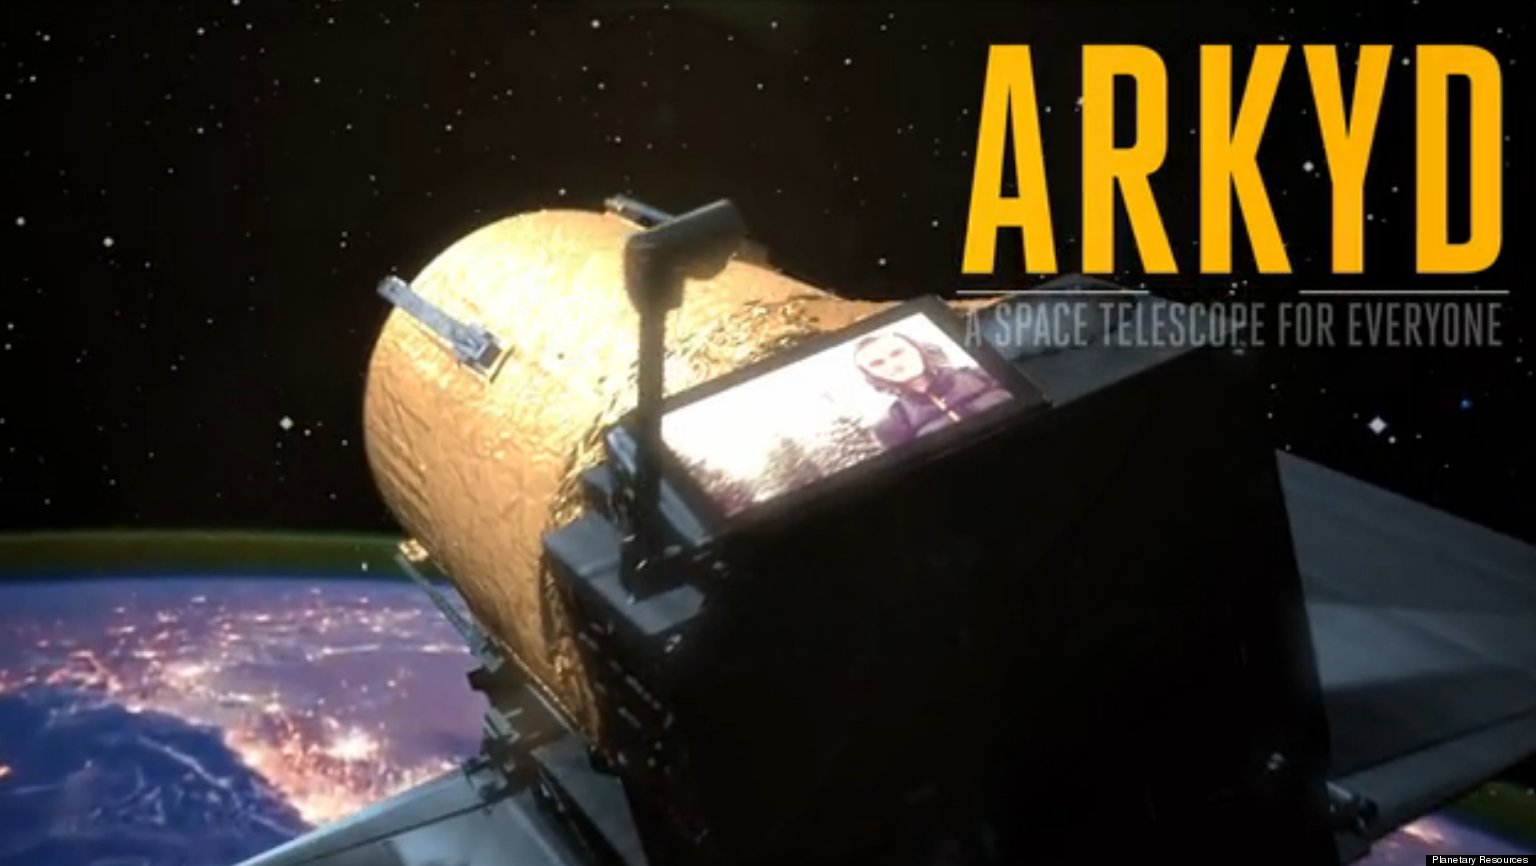 o-CROWD-FUNDED-TELESCOPE-ARKYD-facebook